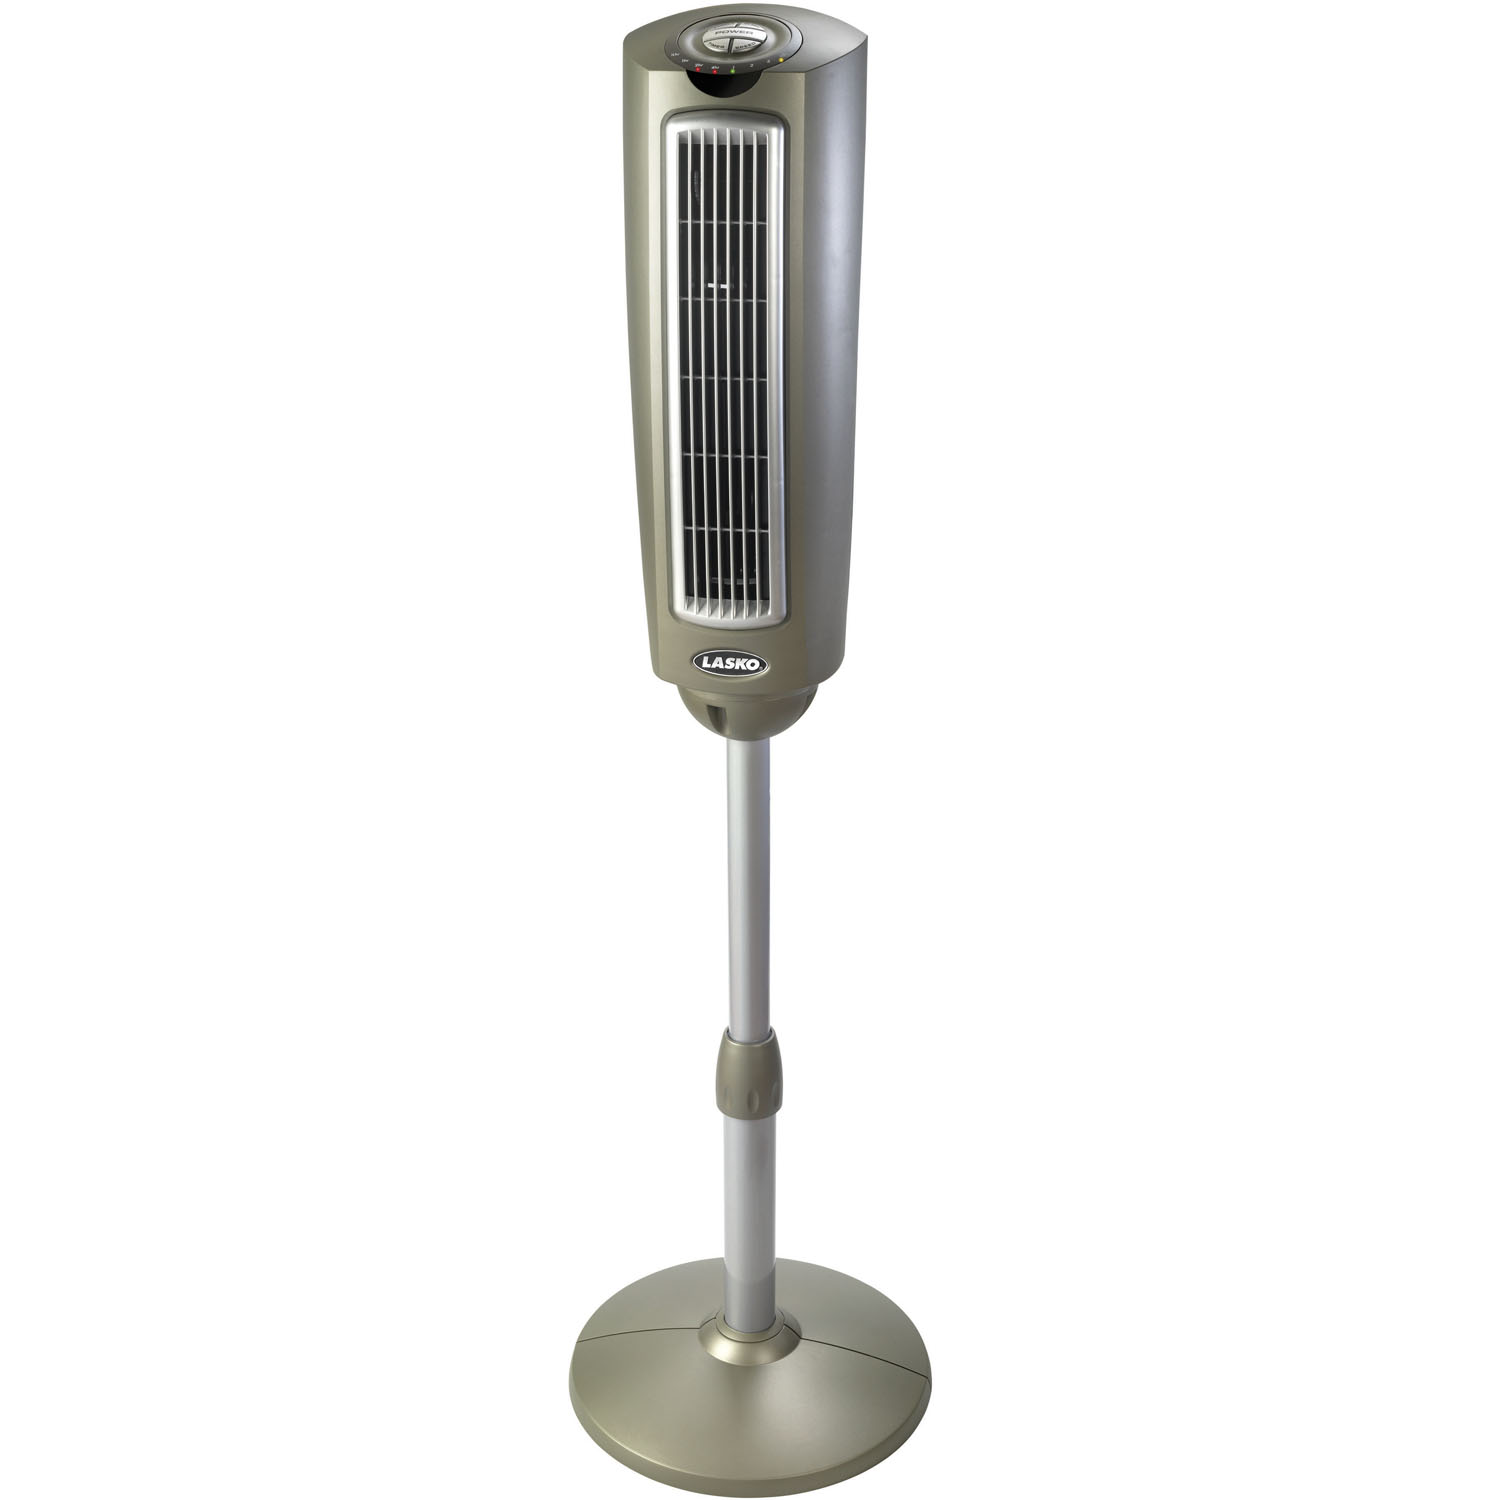 "Lasko 52"" Space-Saving Oscillating Pedestal Tower Fan with Remote Control"